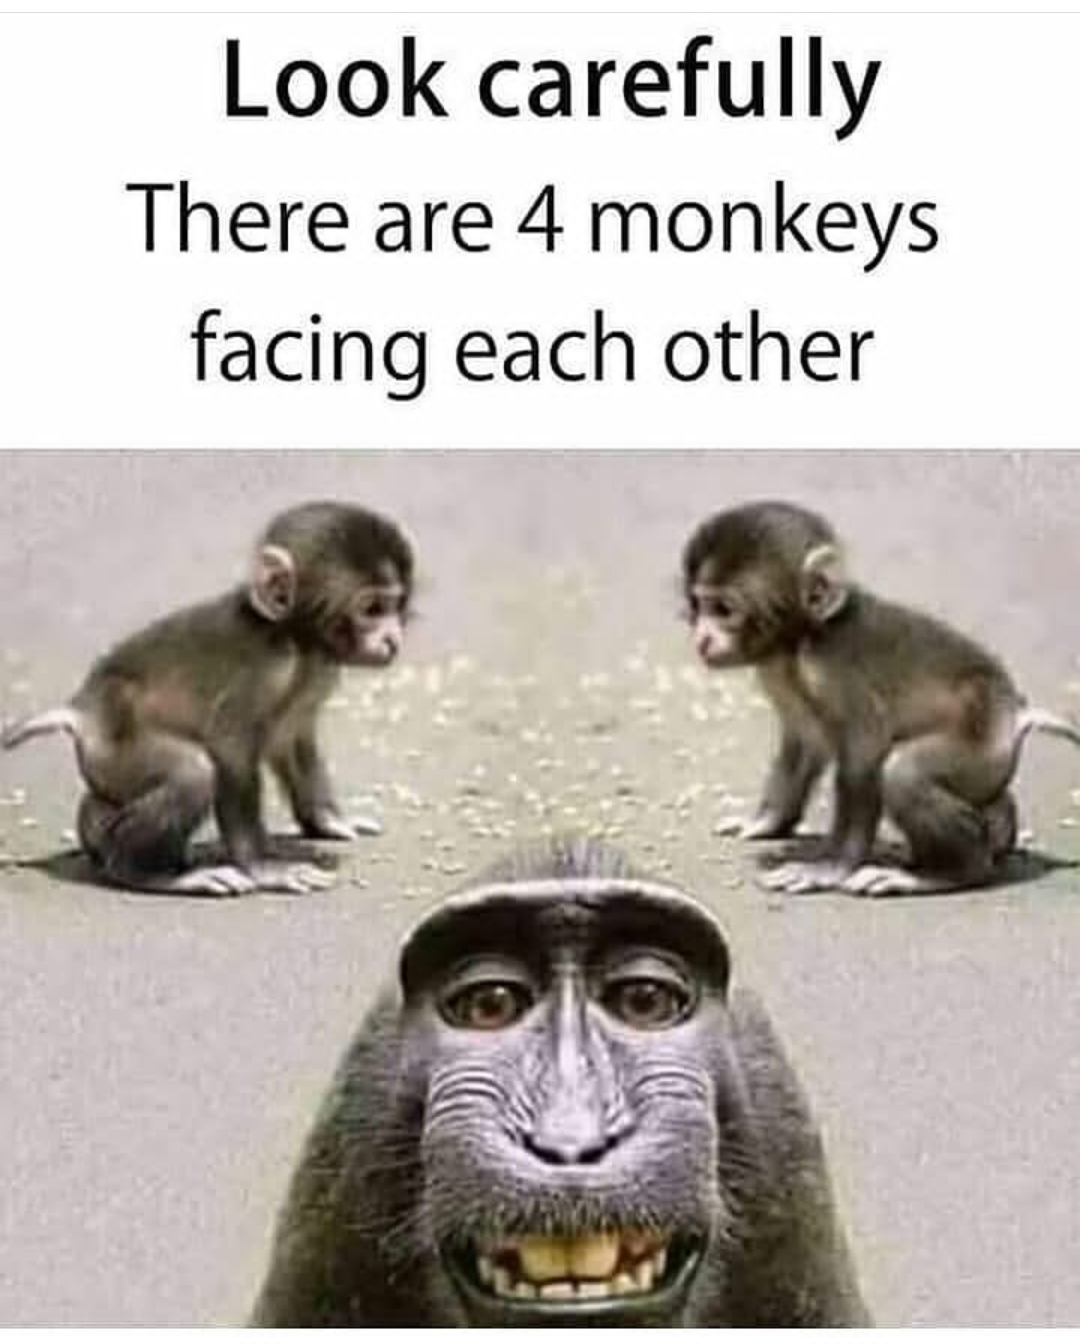 4 Monkeys Images : monkeys, images, Funny, Monkeys, Funny,, Quotes, Kids,